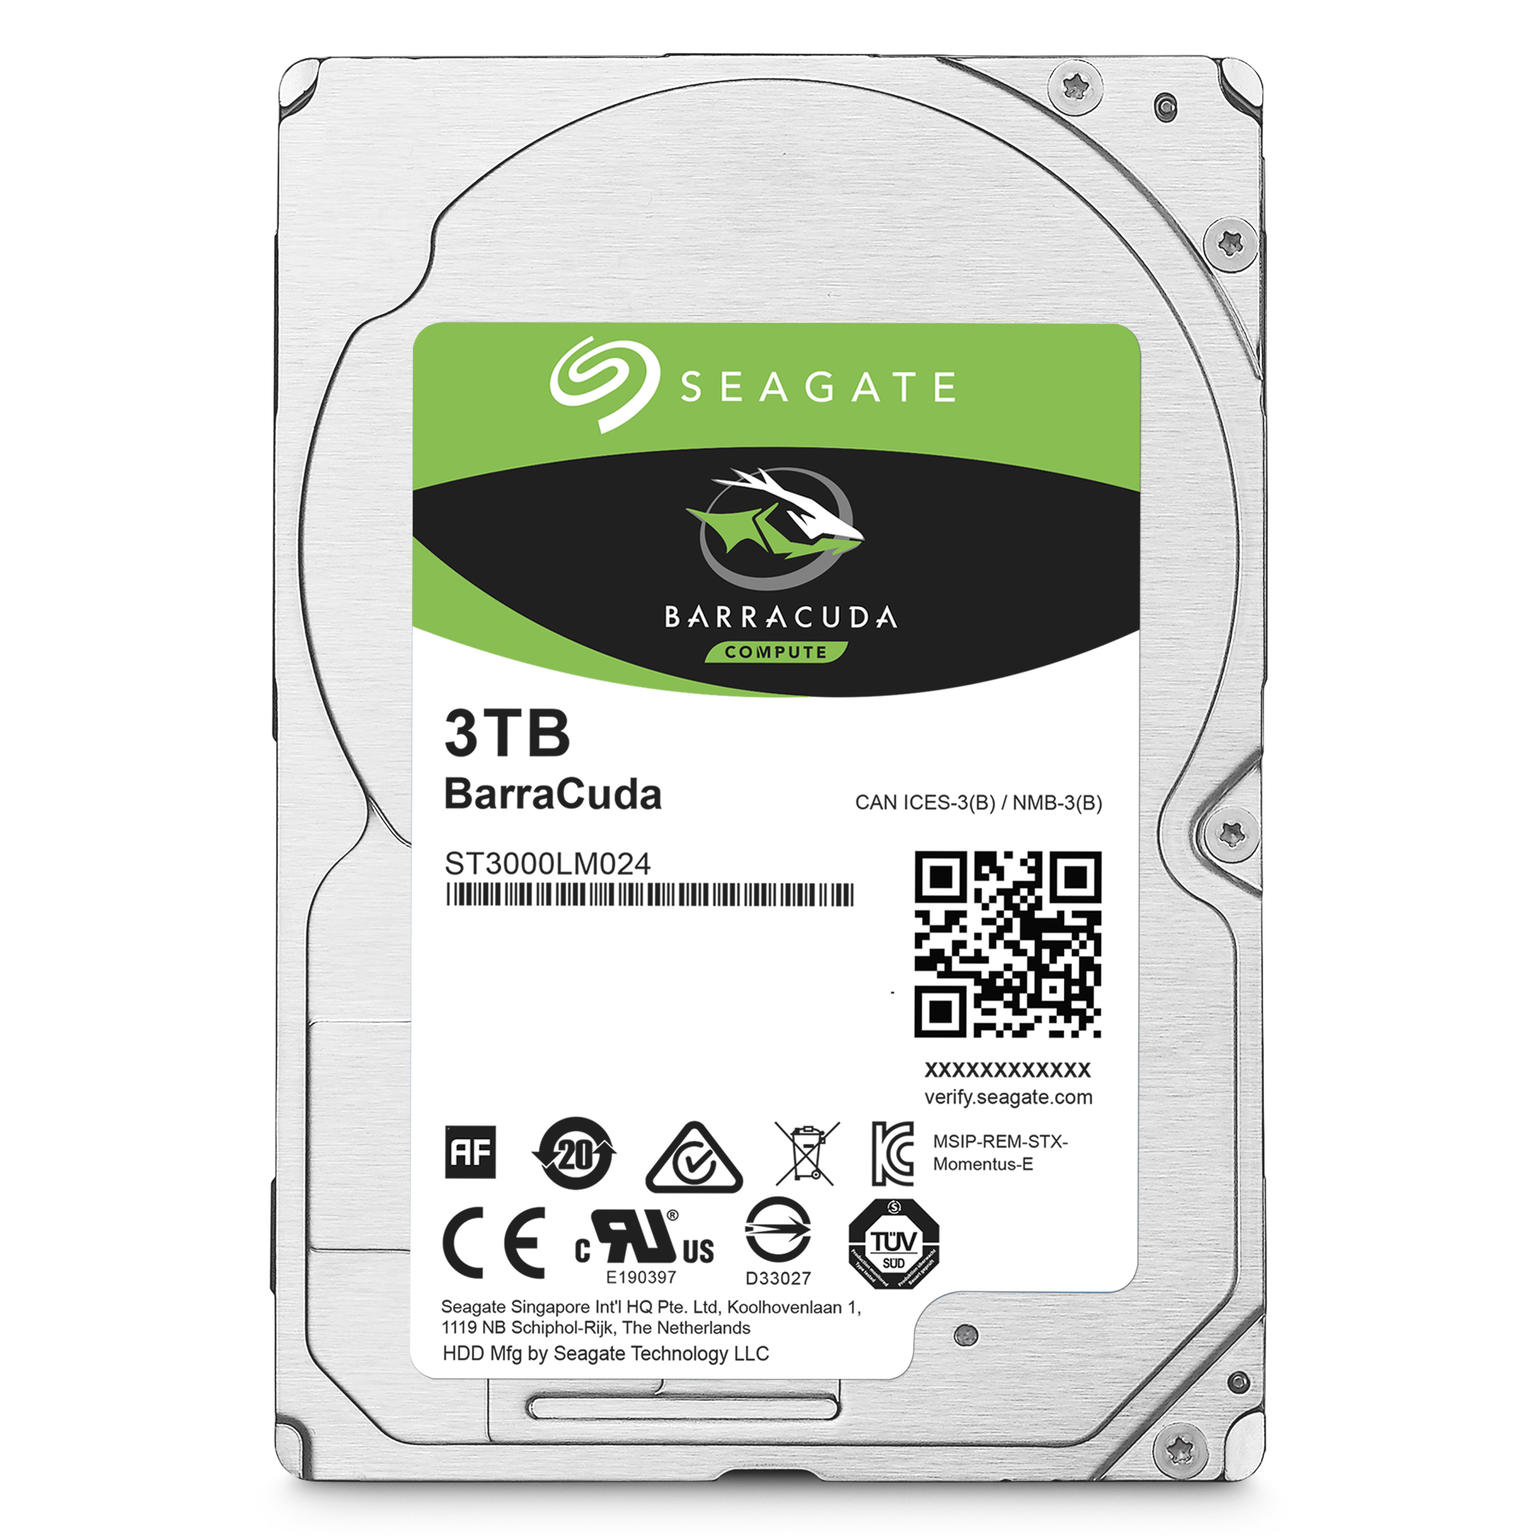 Seagate Barracuda 3 TB Laptop